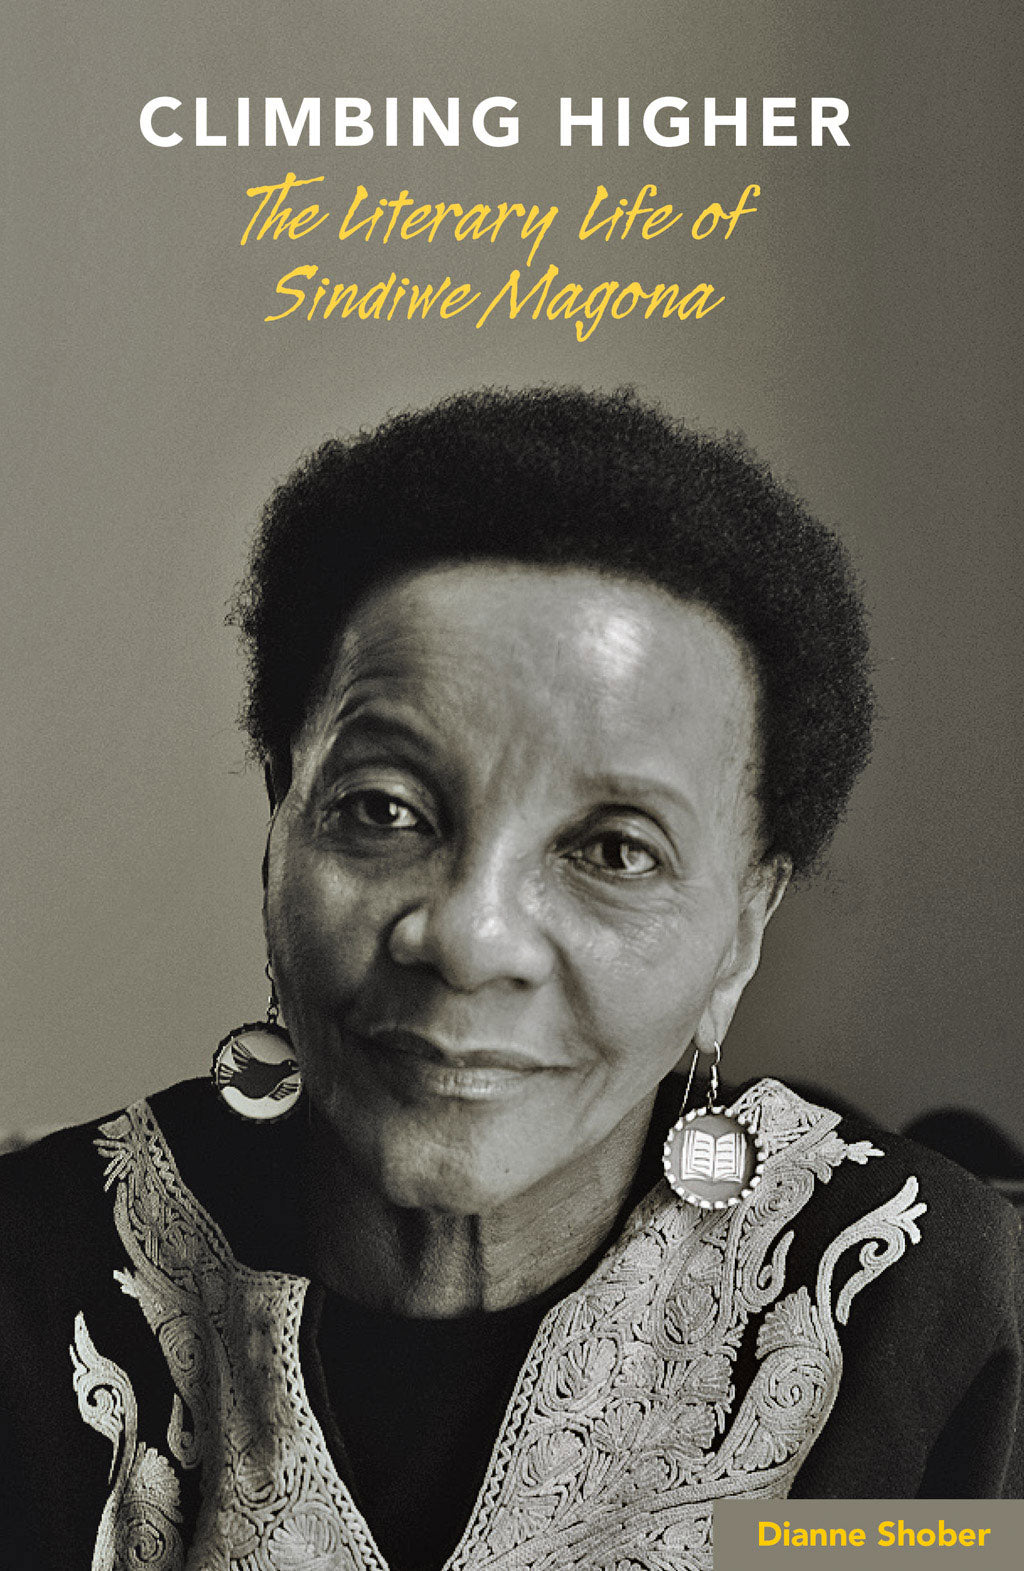 CLIMBING HIGHER: The Literary Life of Sindiwe Magona